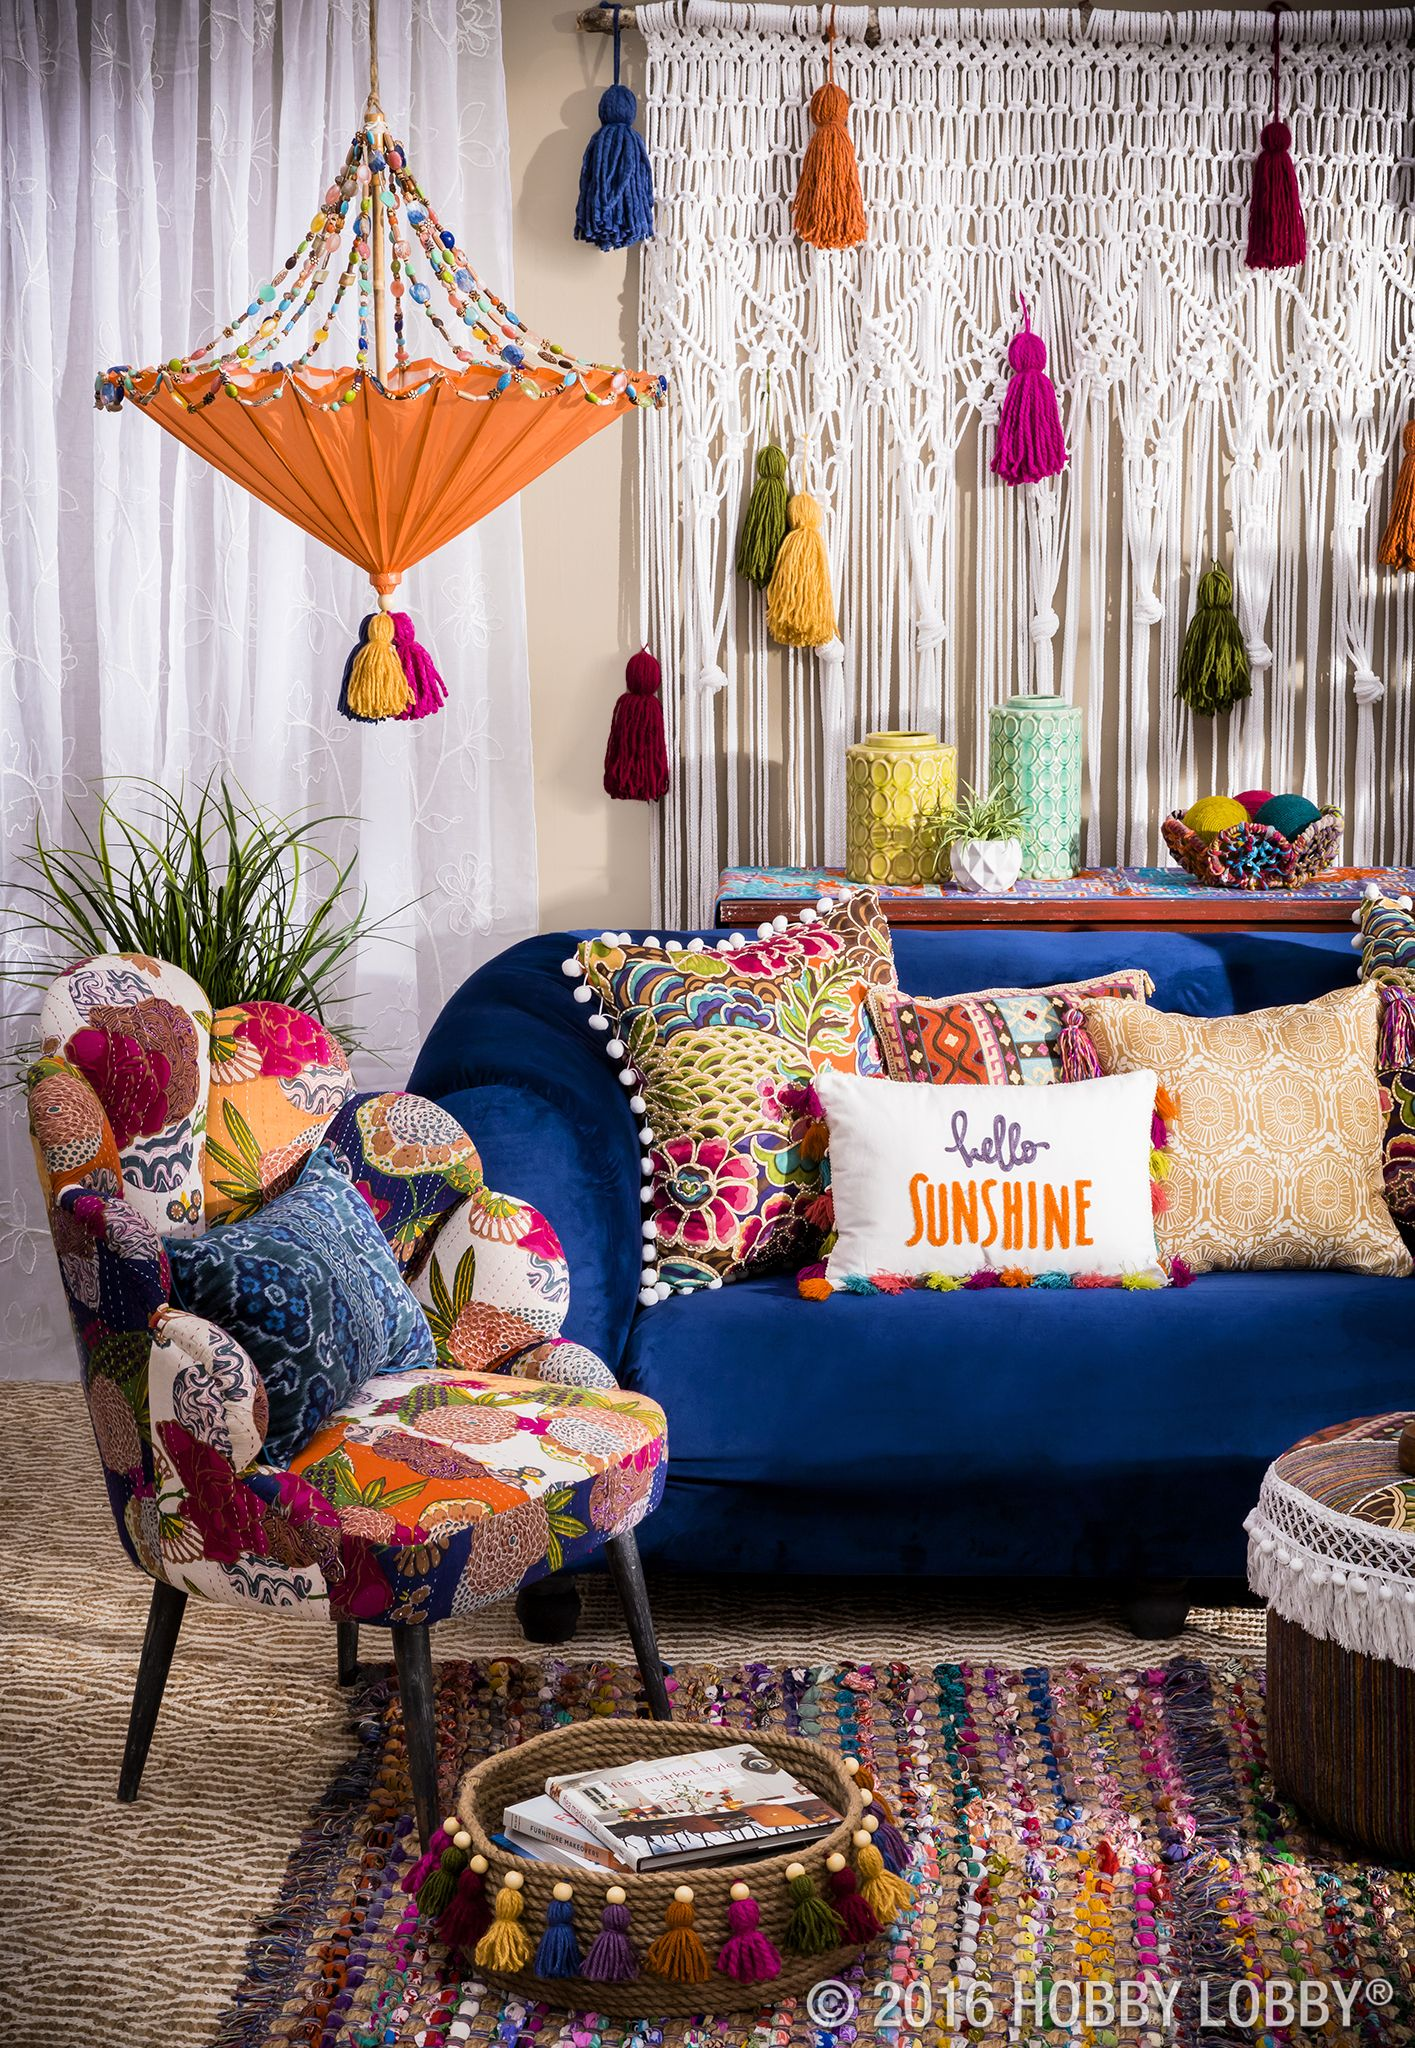 you can never be too bold for boho bohemian living rooms boho living room indian home decor on boho chic decor living room bohemian kitchen id=93293